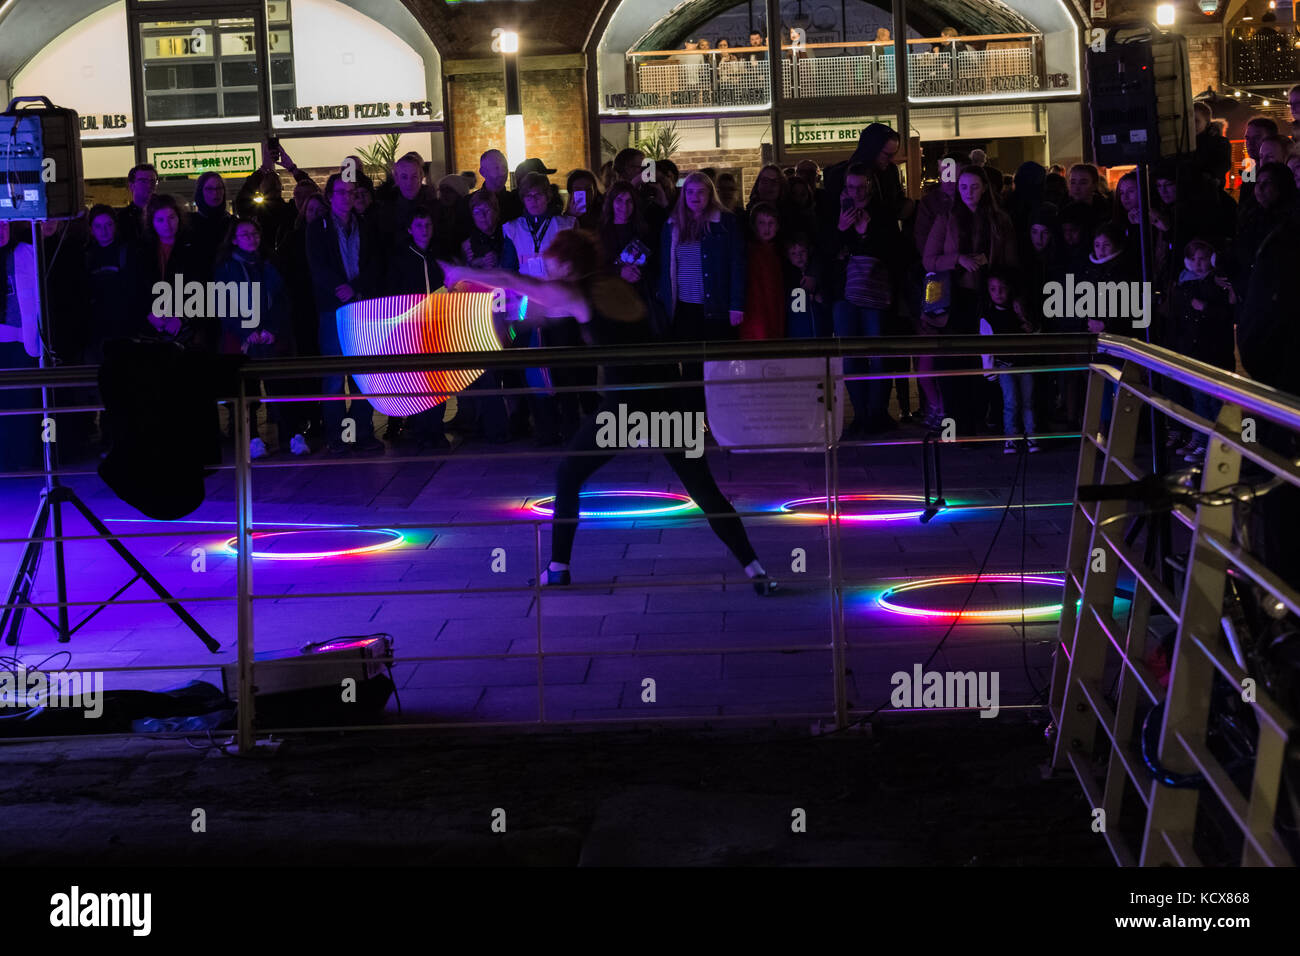 6th Oct 2017, Leeds Night Light, a magical celebration of light and colour, this the 13th year of Light Night Leeds. Stock Photo